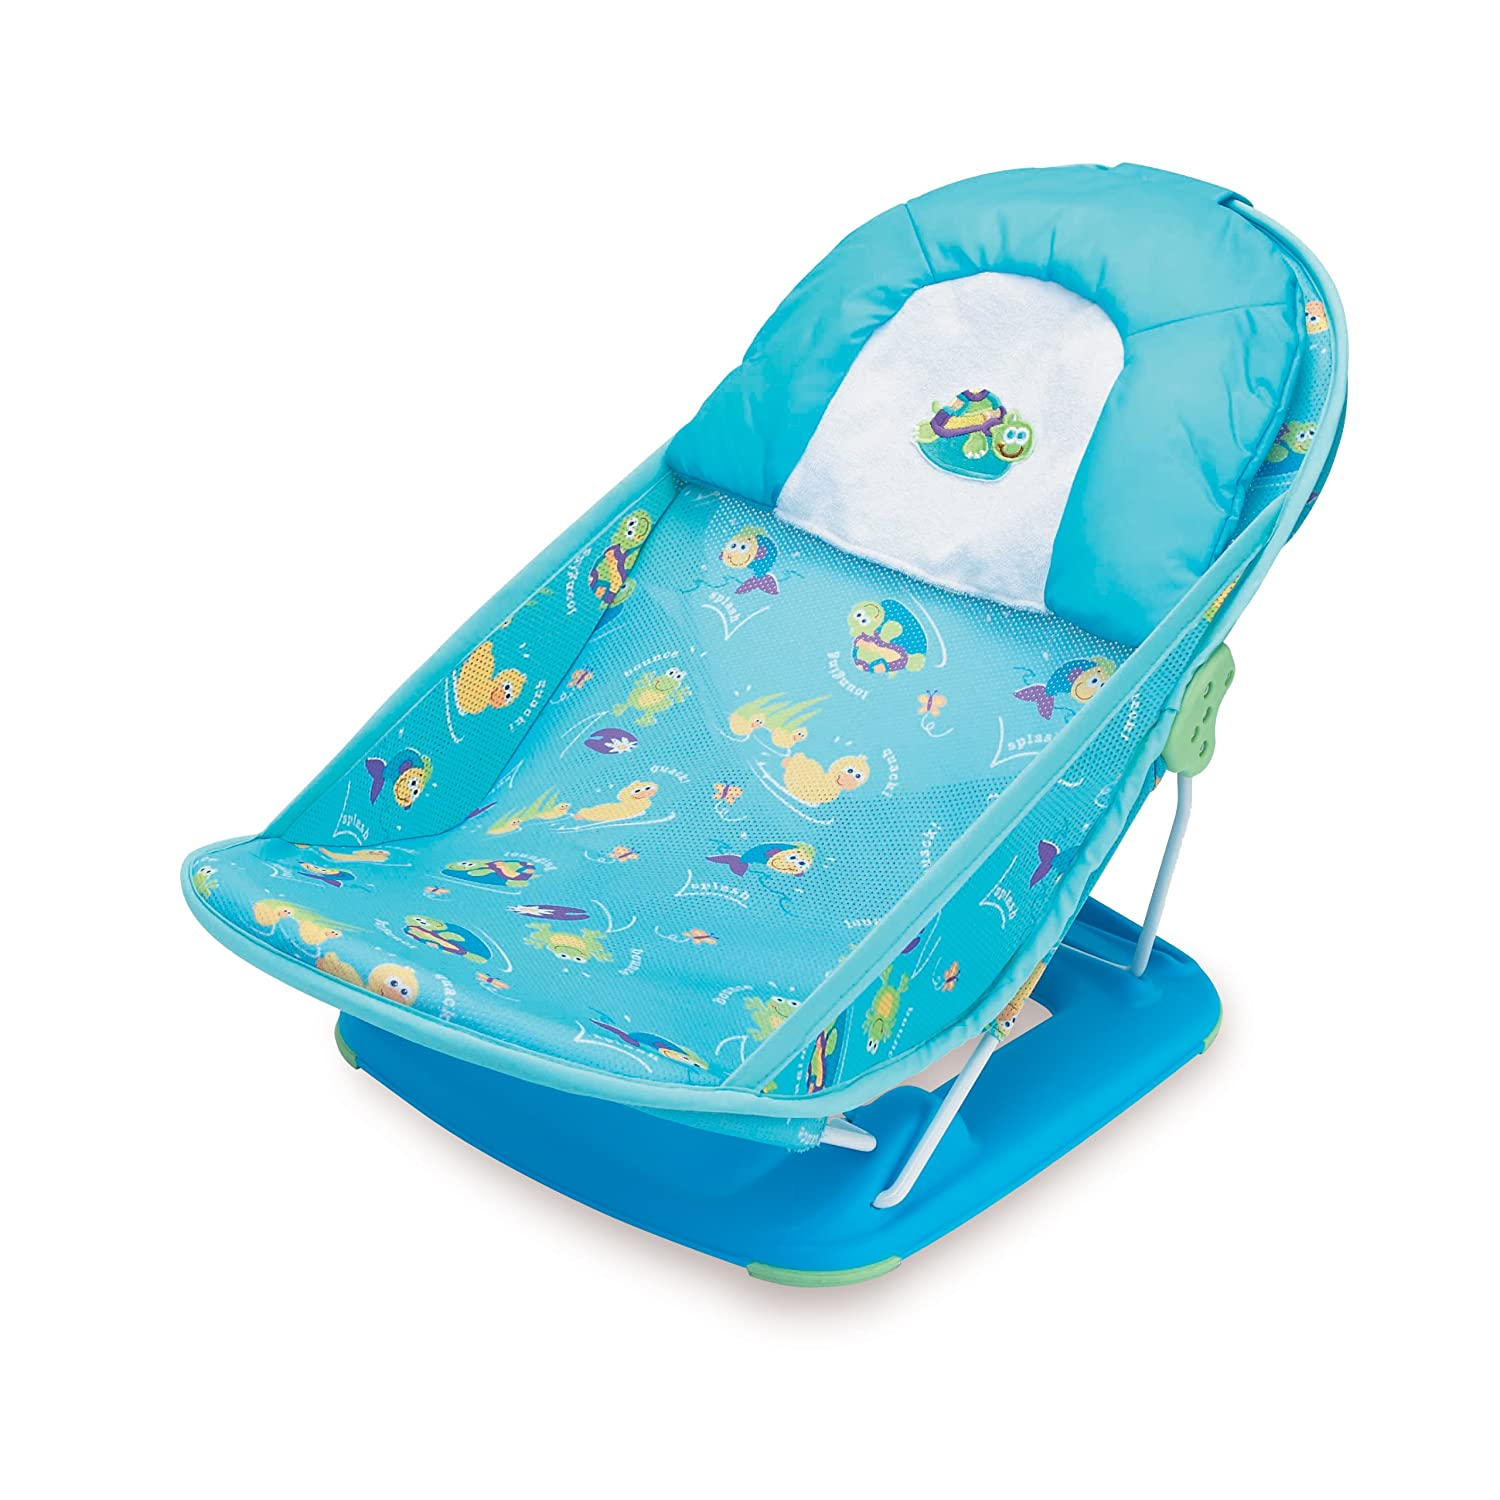 bathtub chair for baby patio cushions home depot hey jude what works us favorite stuff 3 months